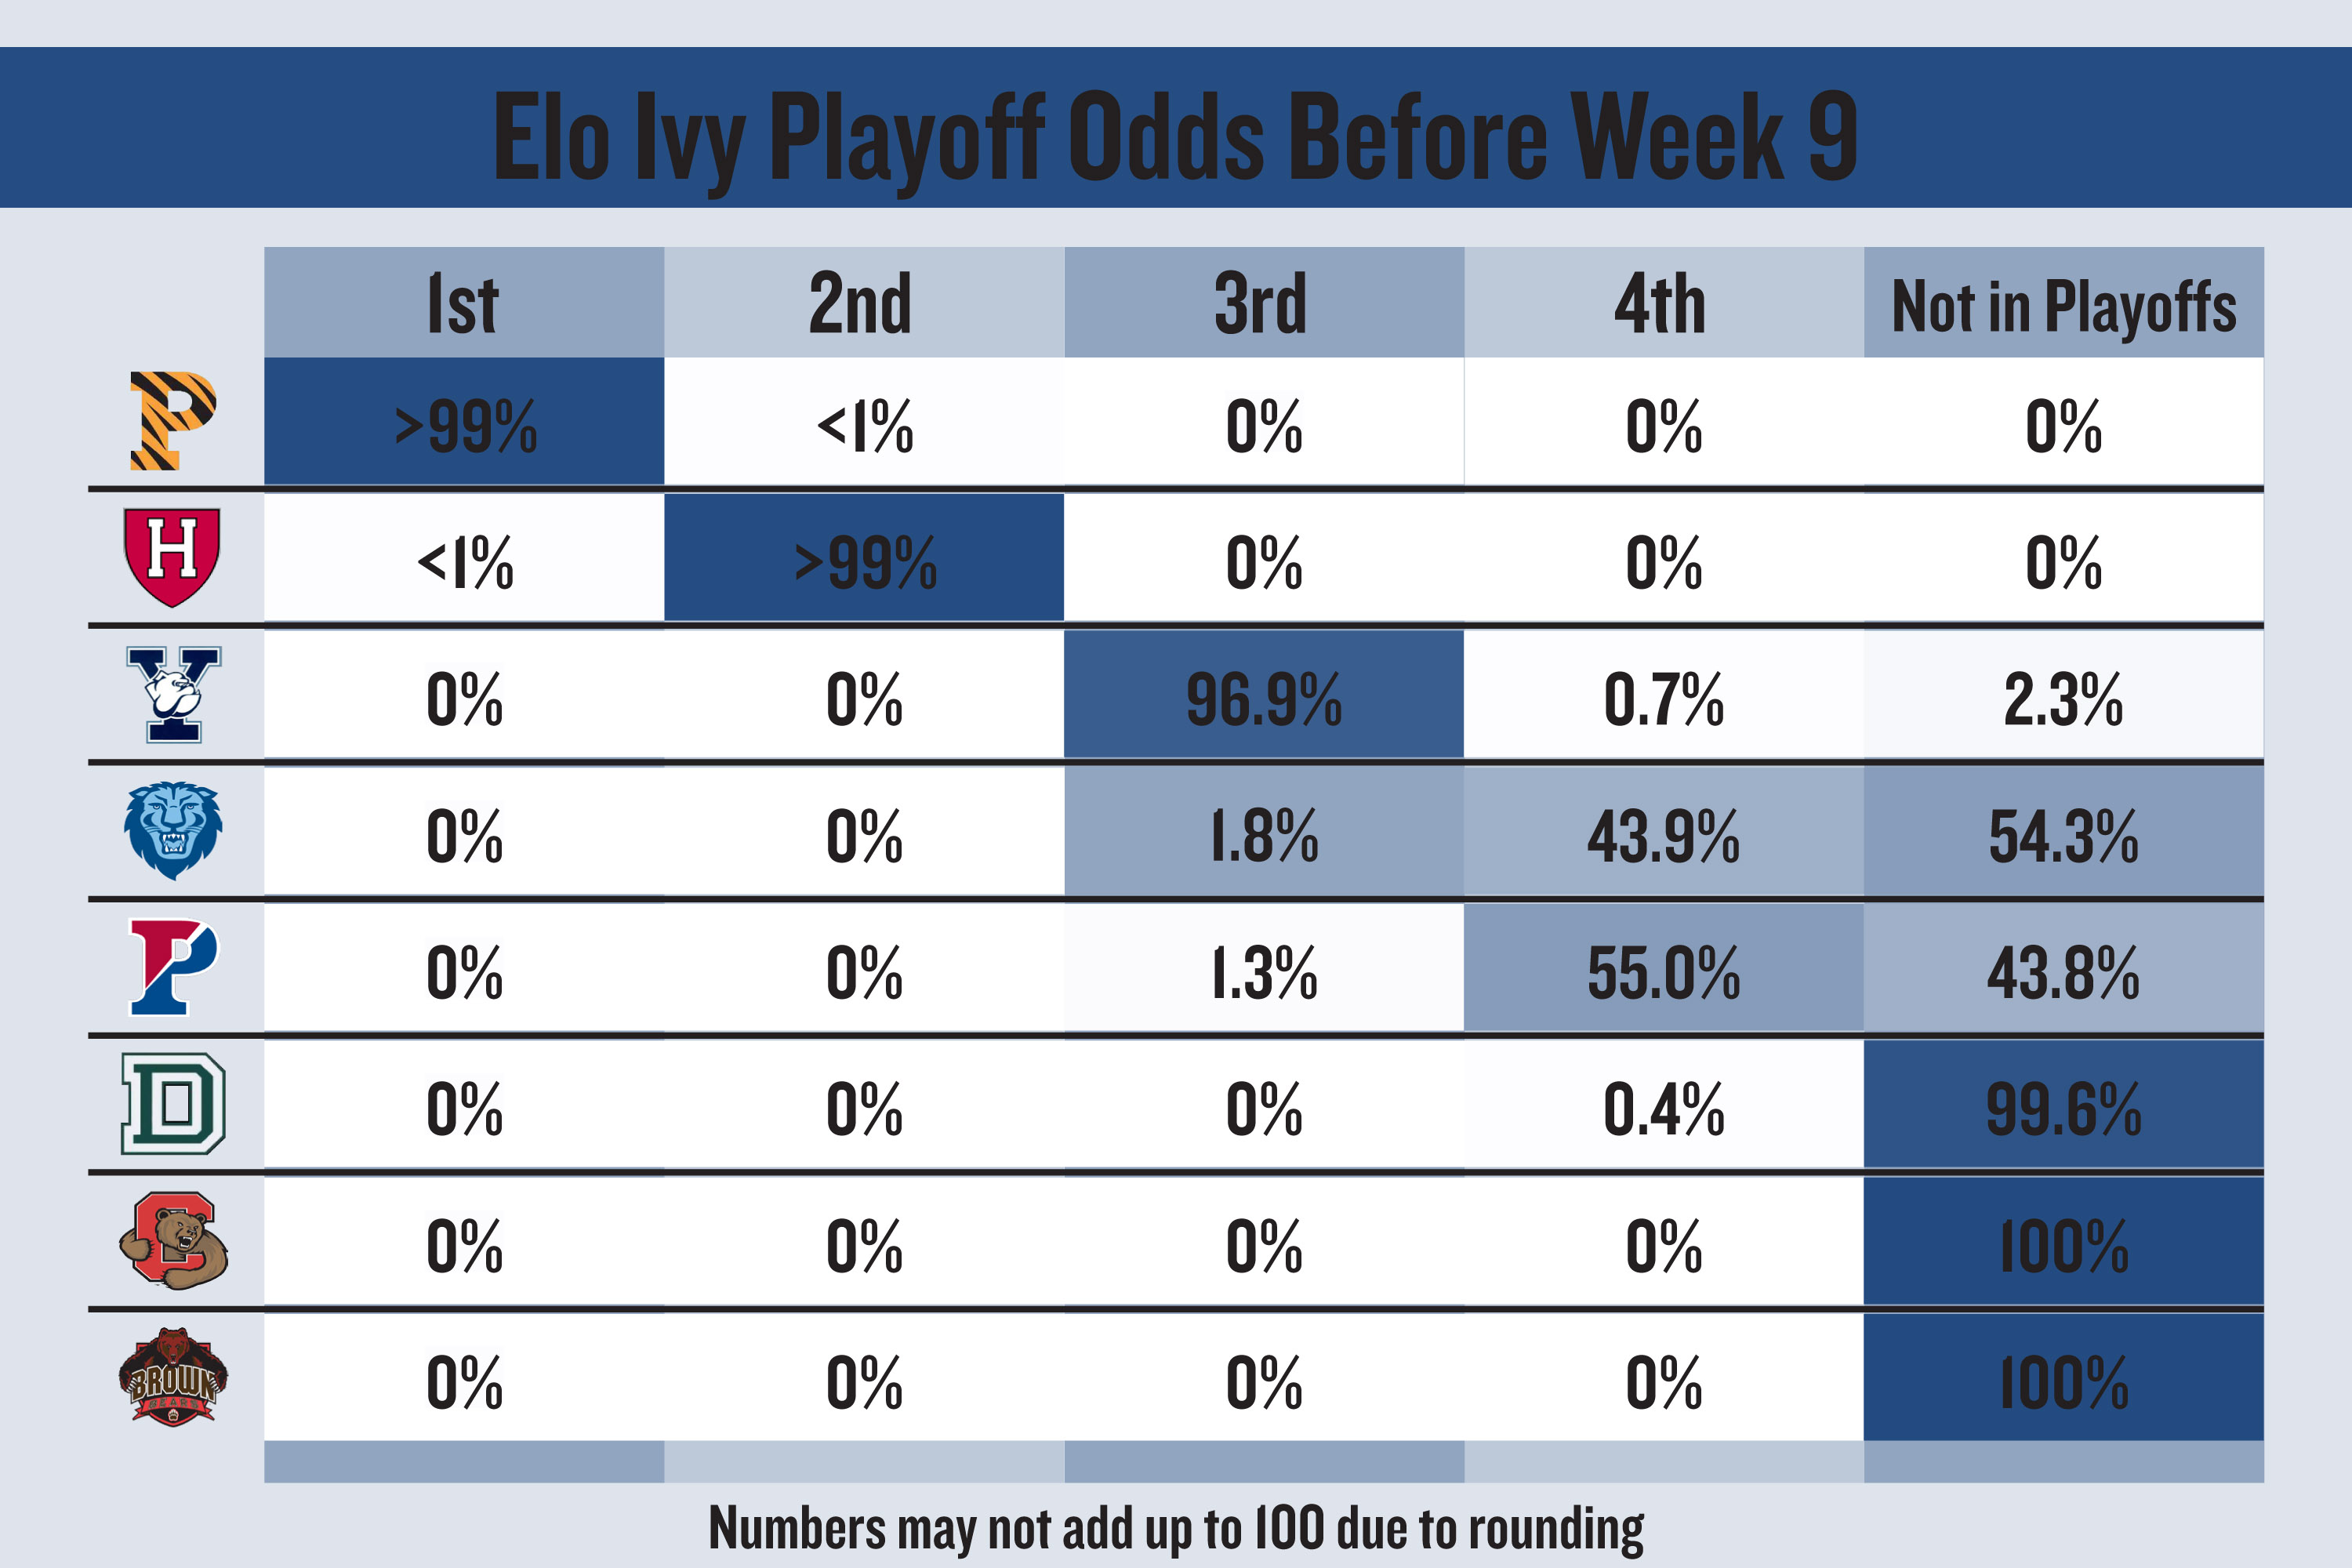 Elo predicts Ivy Tournament picture - Columbia Daily Spectator